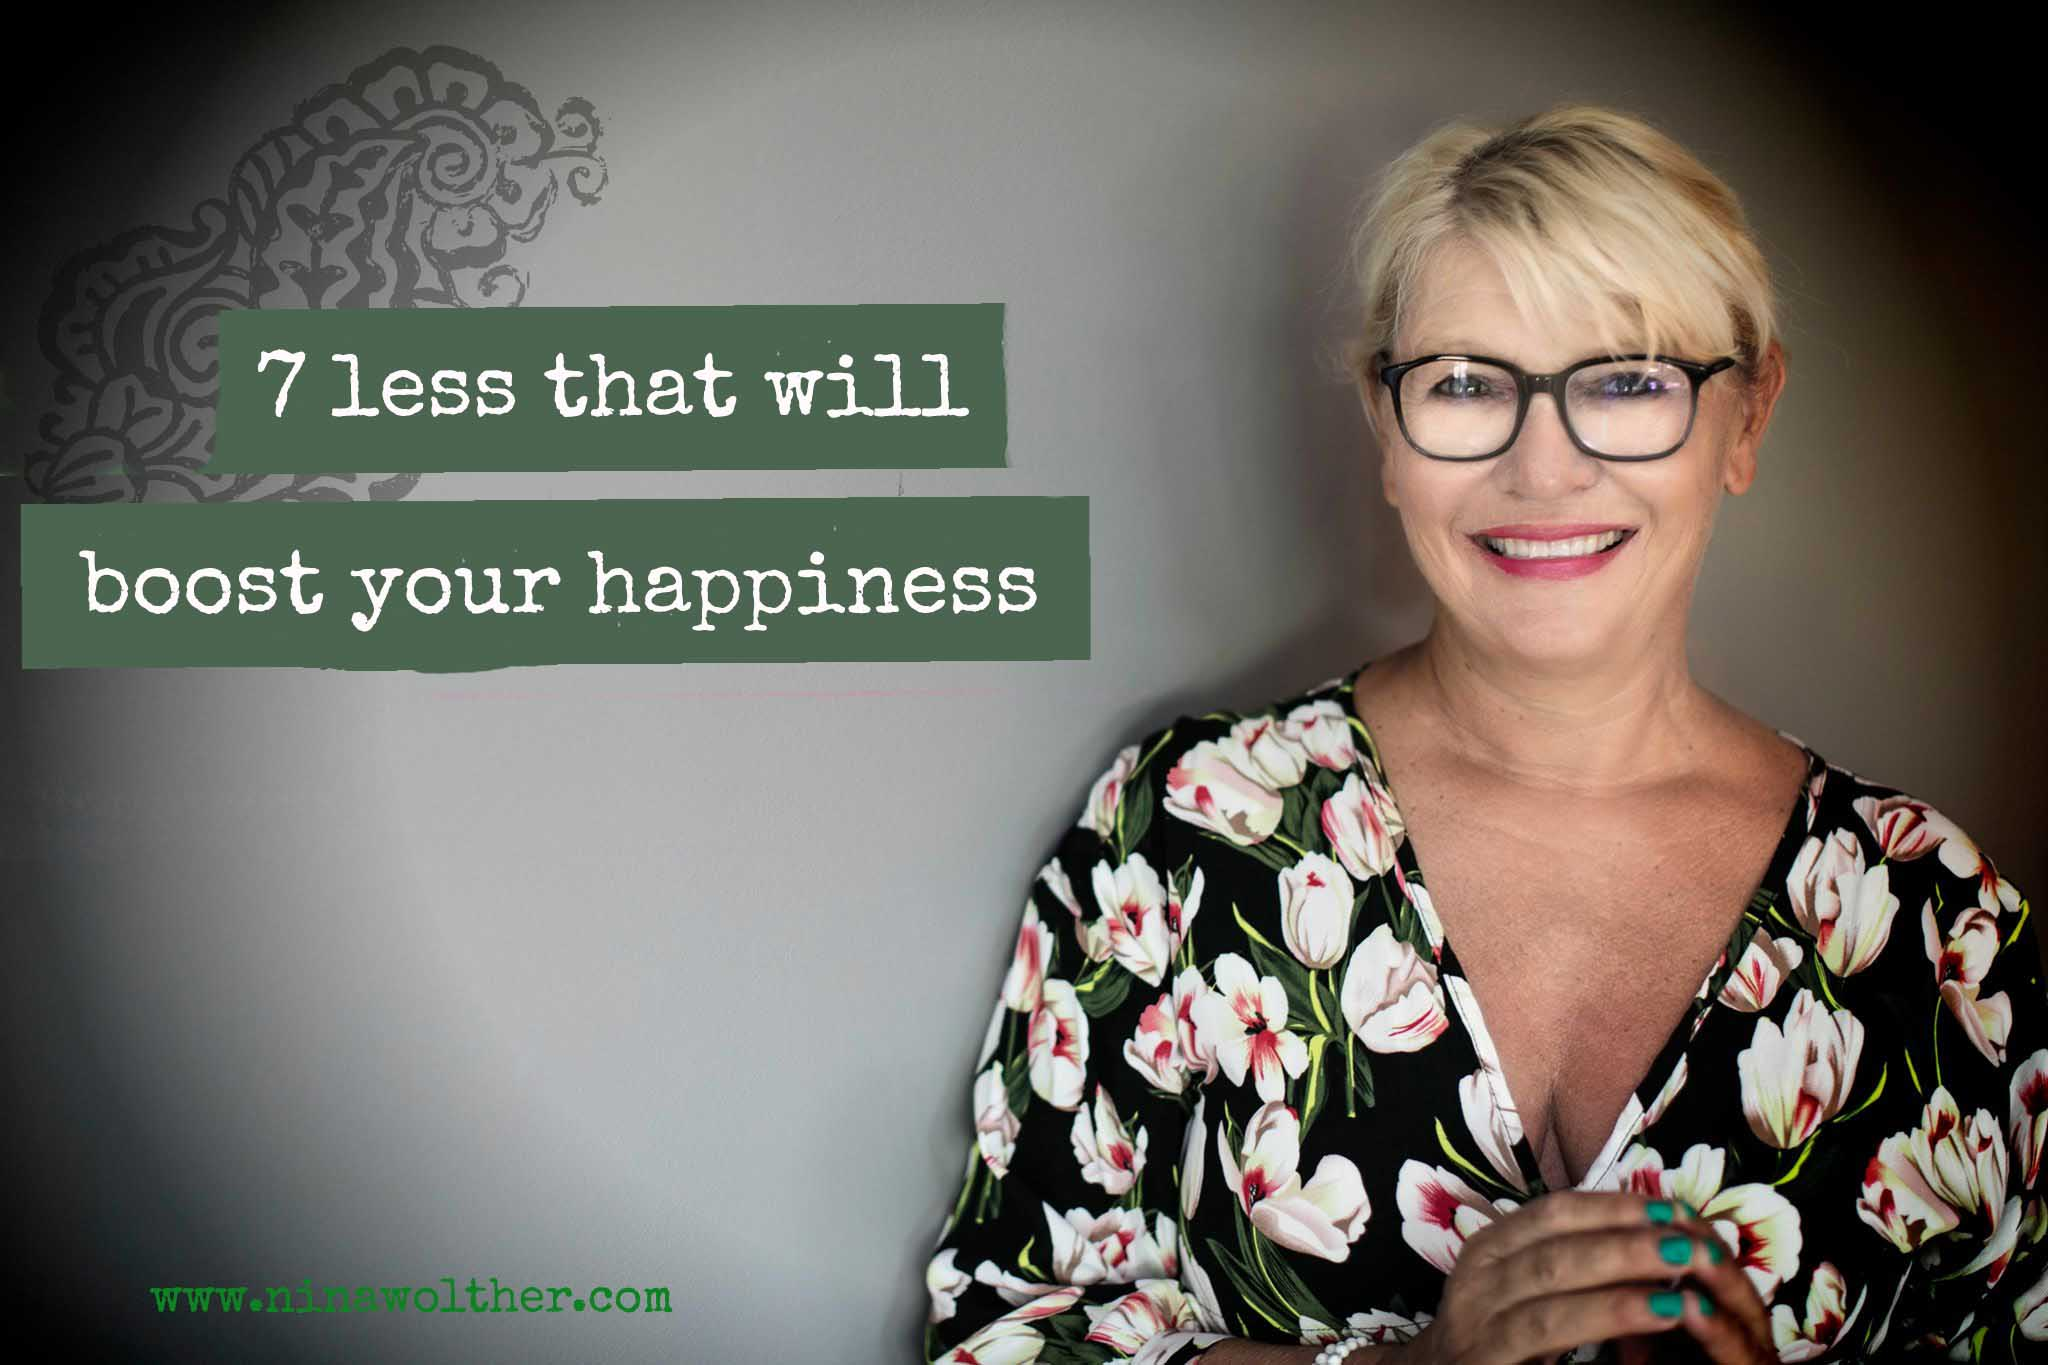 7 LESS that boost happiness